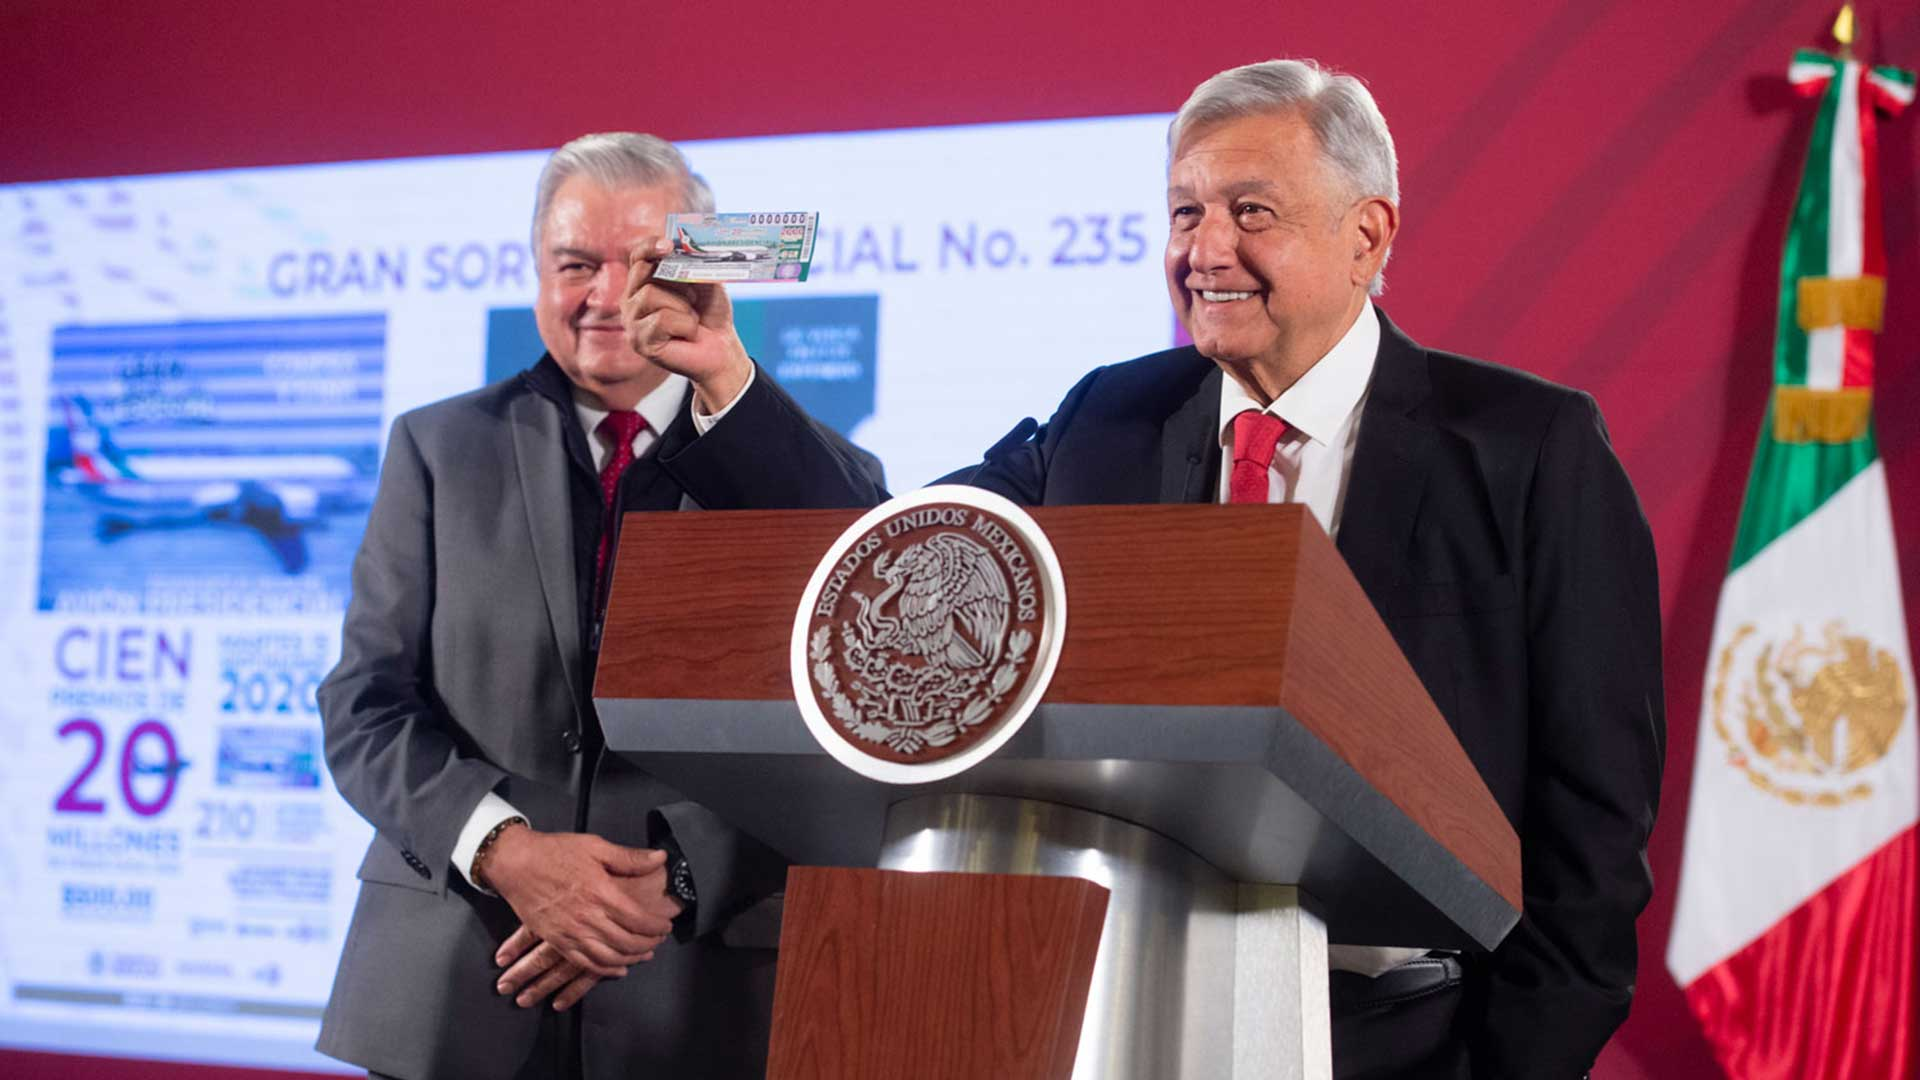 Mexican President Andrés Manuel López Obrador shows the ticket he purchased for the presidential airplane raffle.